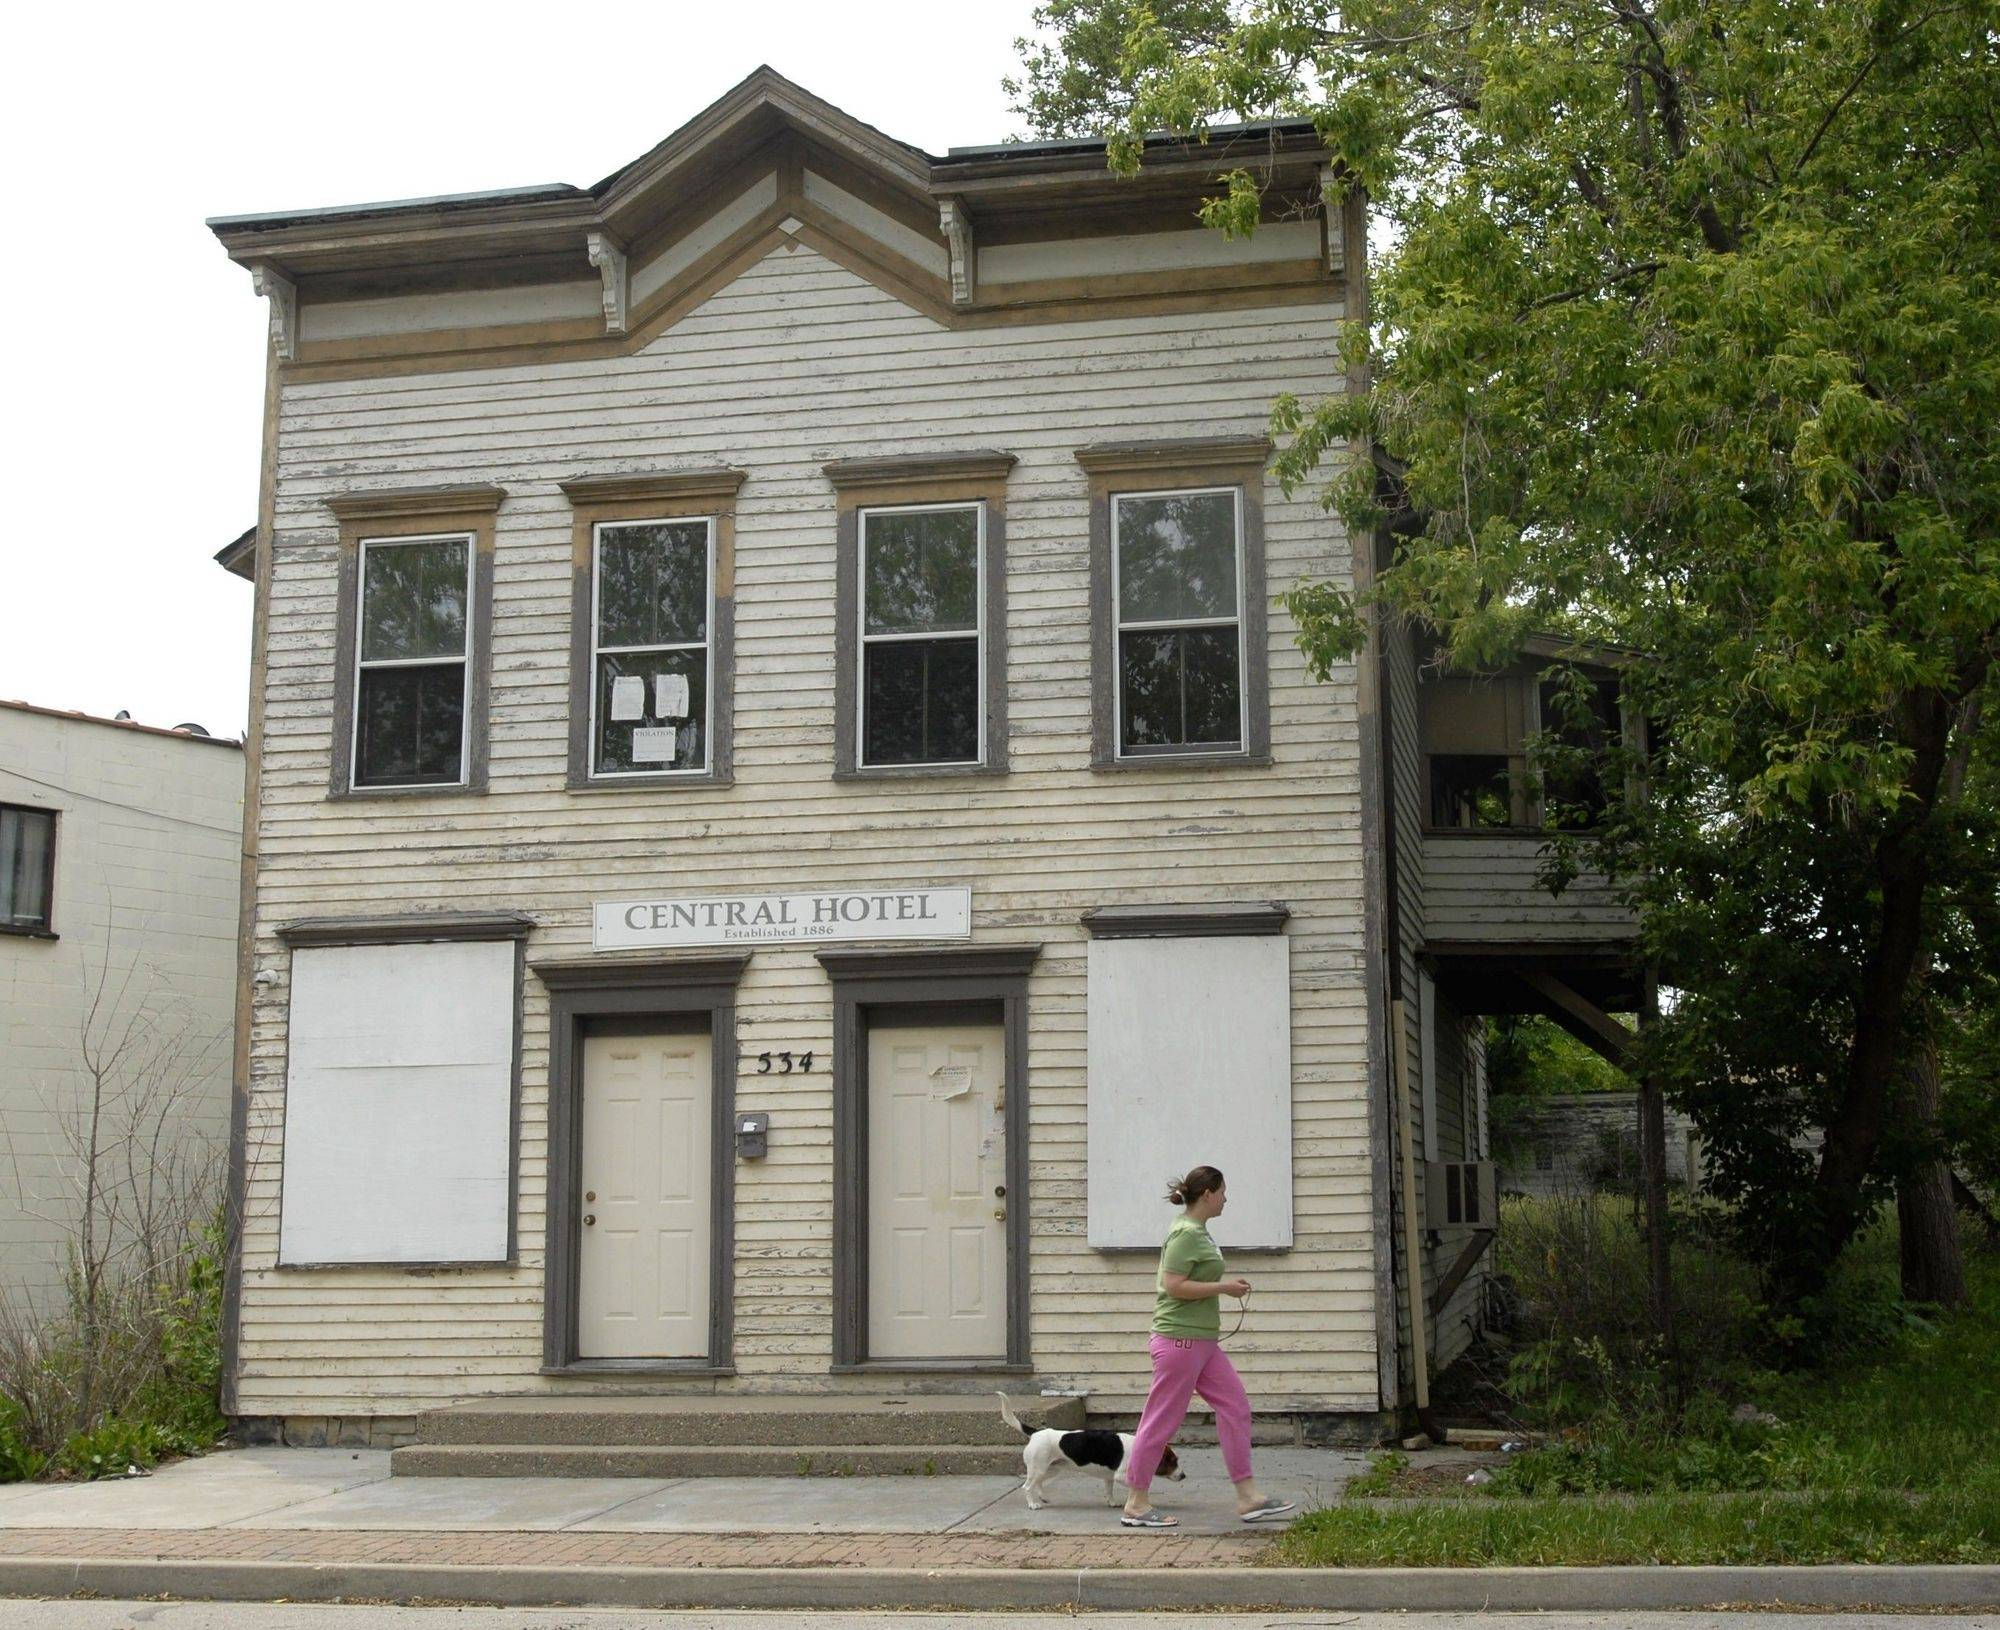 Downtown Mundelein building gets spruced up, now awaiting tenants